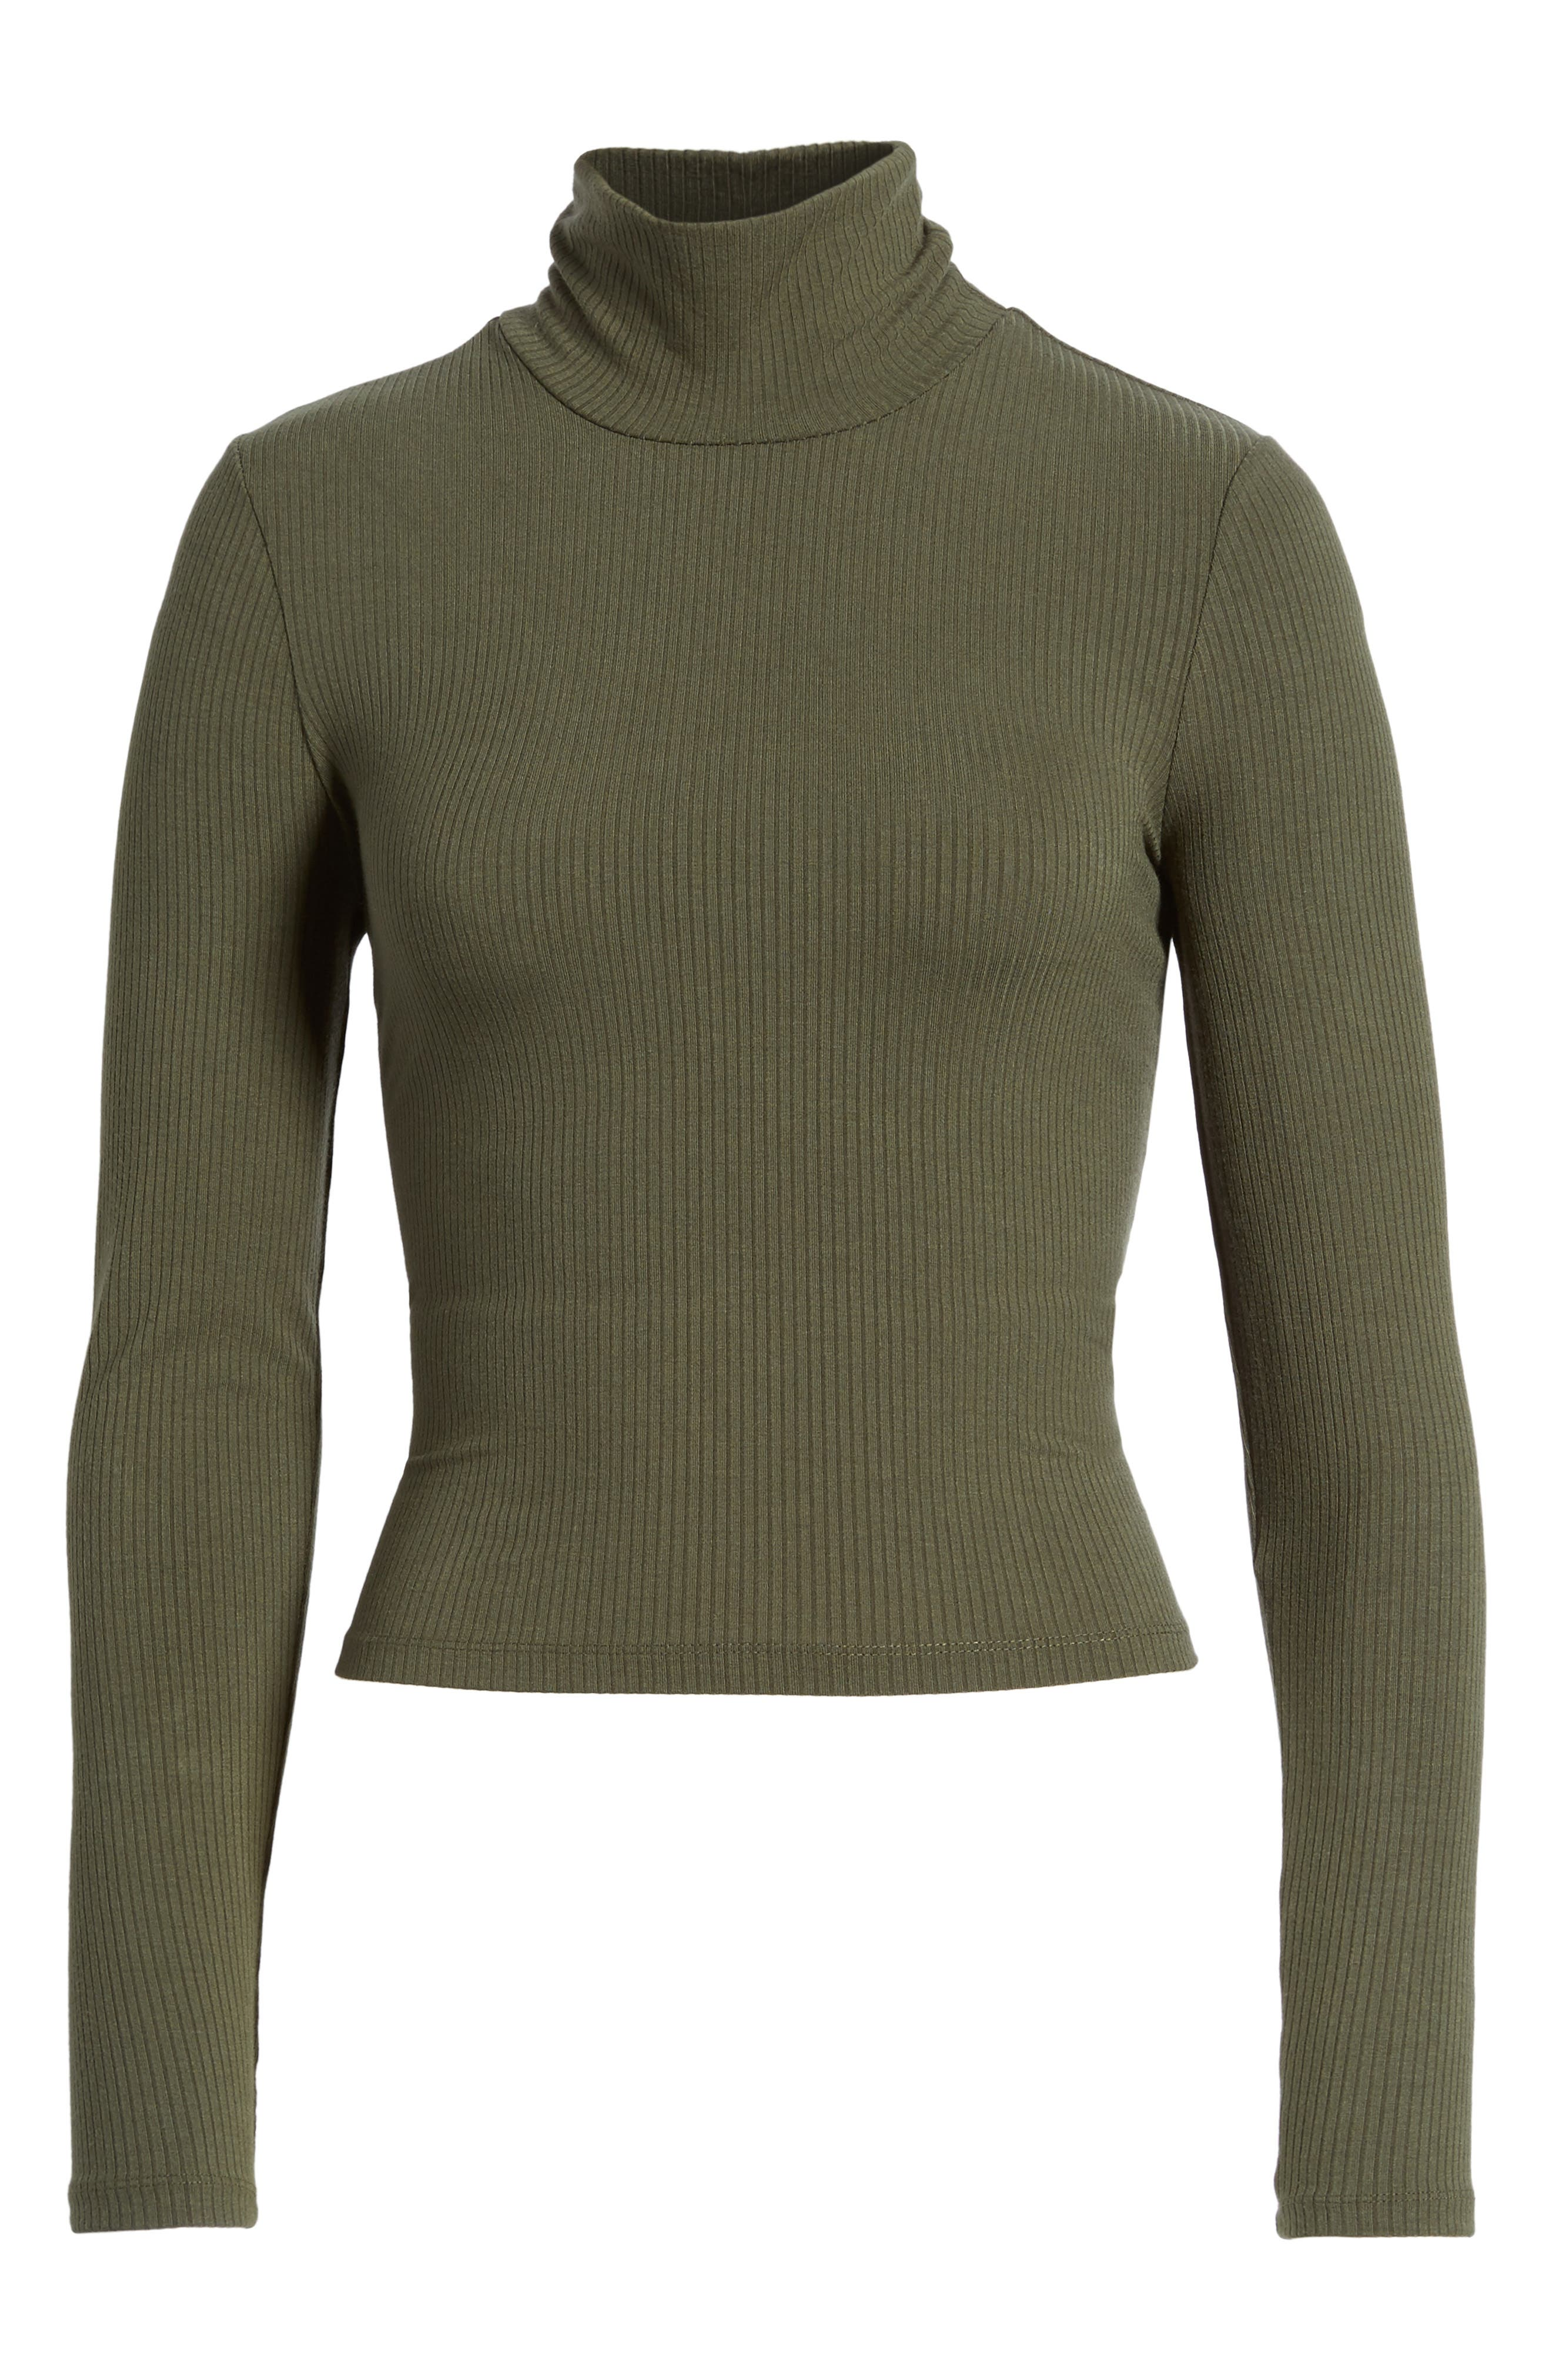 Mira Lace Up Turtleneck,                             Alternate thumbnail 6, color,                             Olive